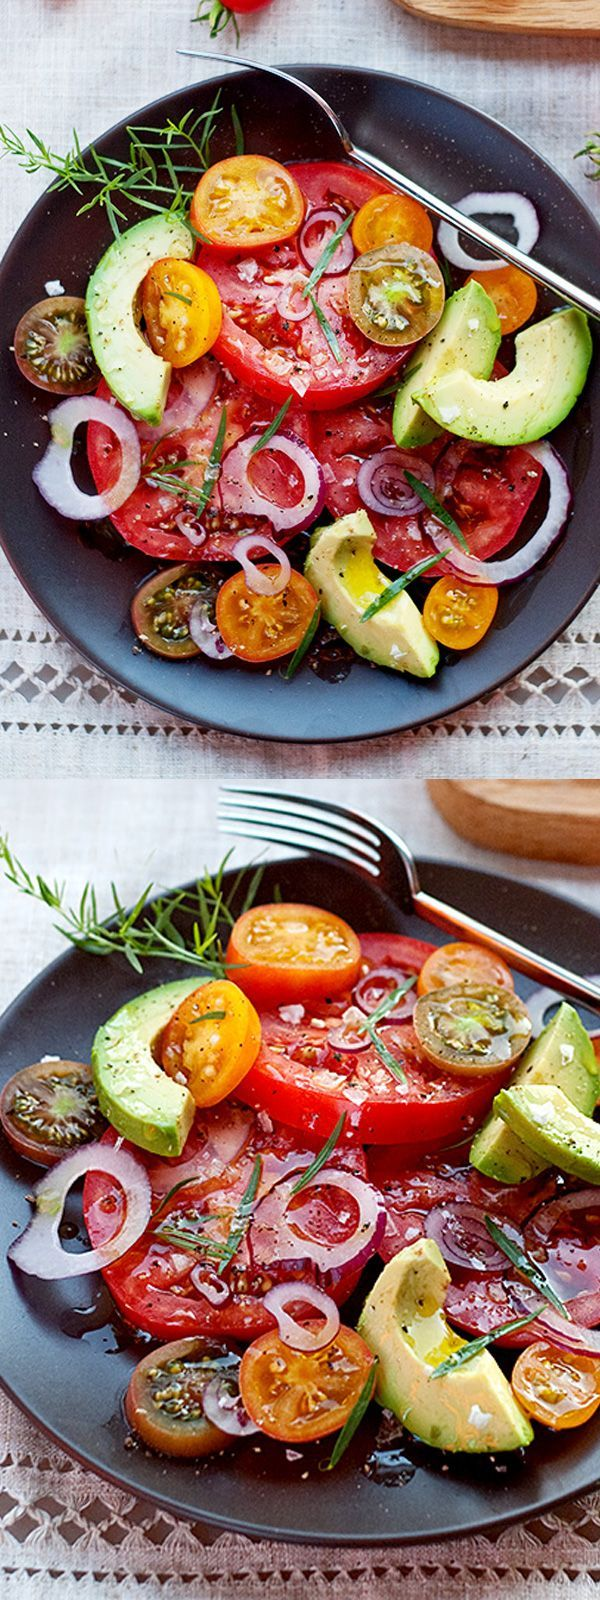 Avocado, Onion, and Tomato Salad #avocado #salad #recipe